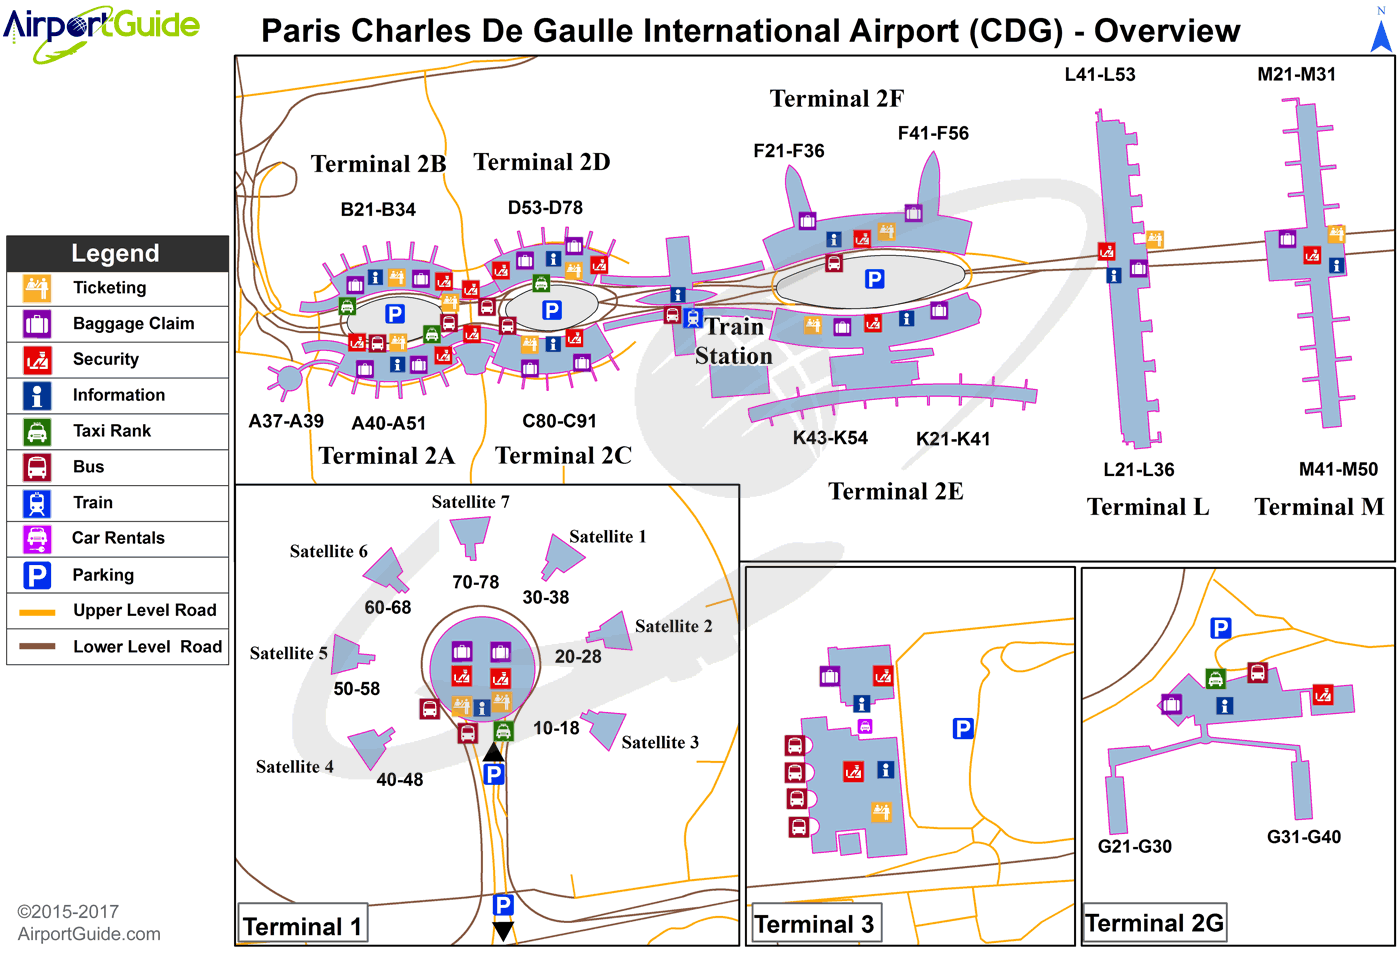 paris charles de gaulle international cdg airport terminal maps. Black Bedroom Furniture Sets. Home Design Ideas